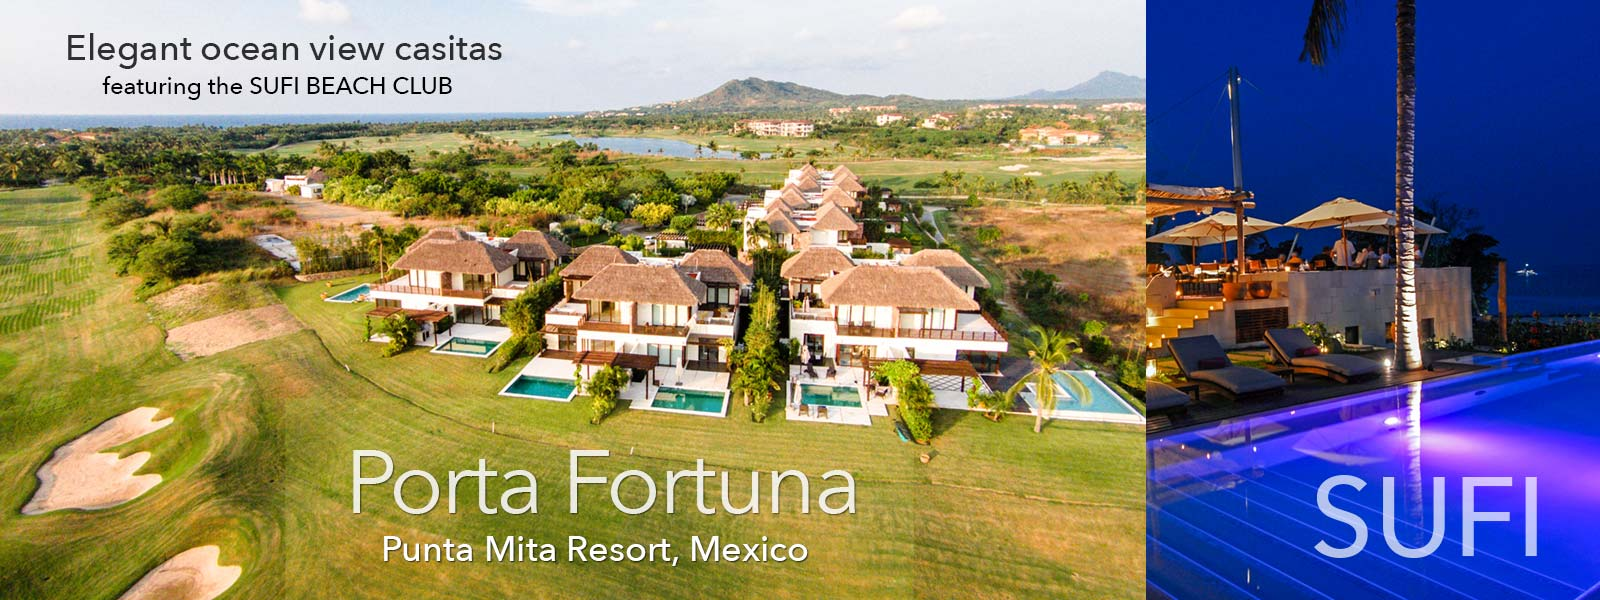 Porta Fortuna - Punta Mita Resort Real Estate - Vallarta | Nayarit - Mexico